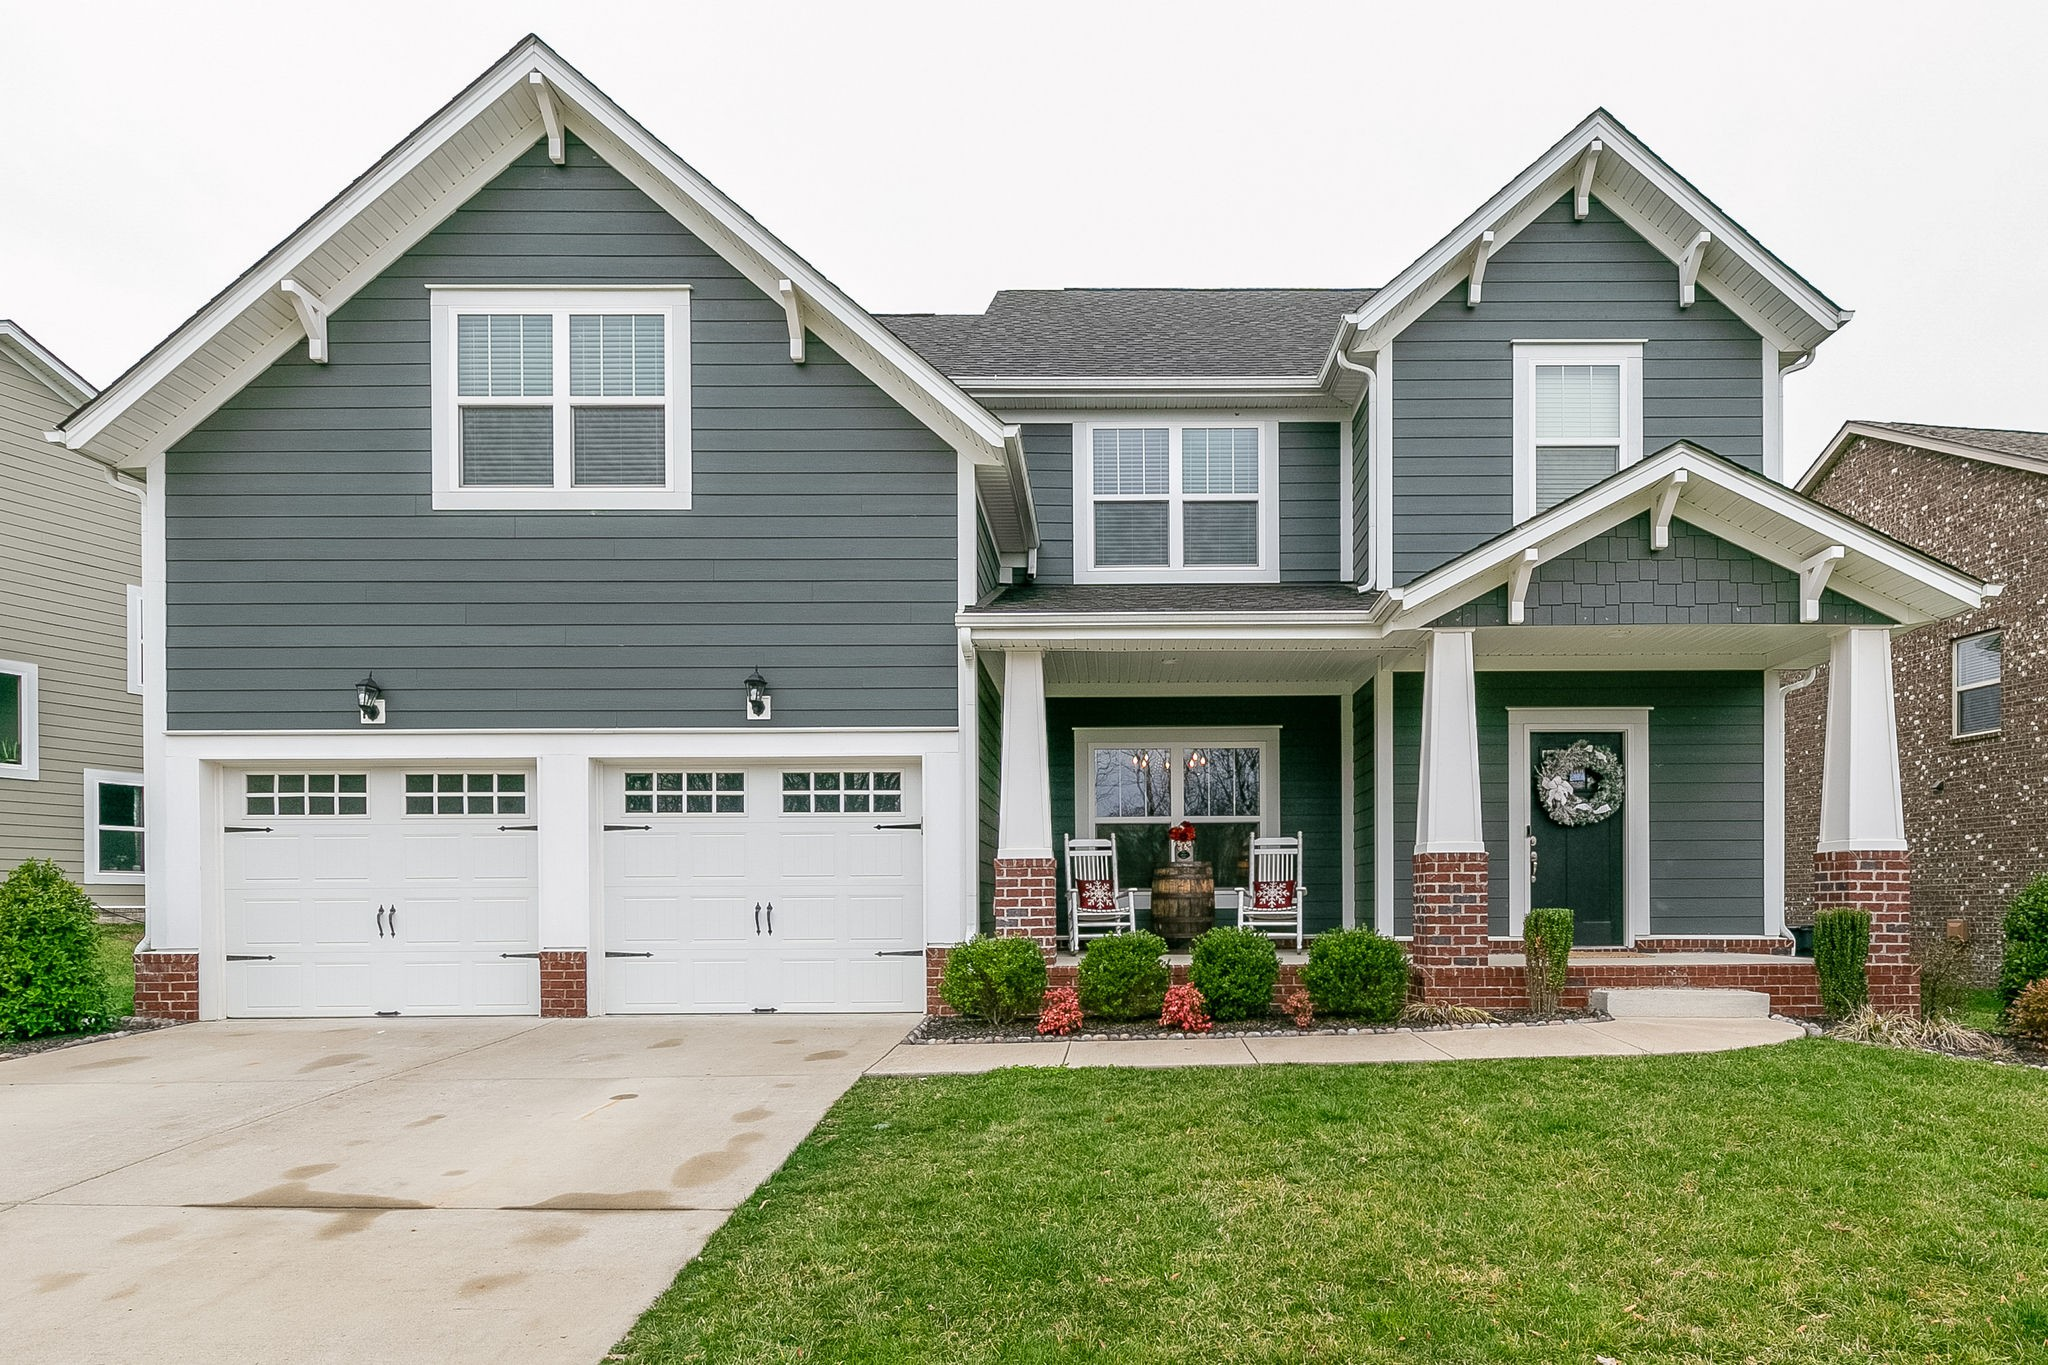 3034 Callaway Park Pl, Thompsons Station, TN 37179 - Thompsons Station, TN real estate listing